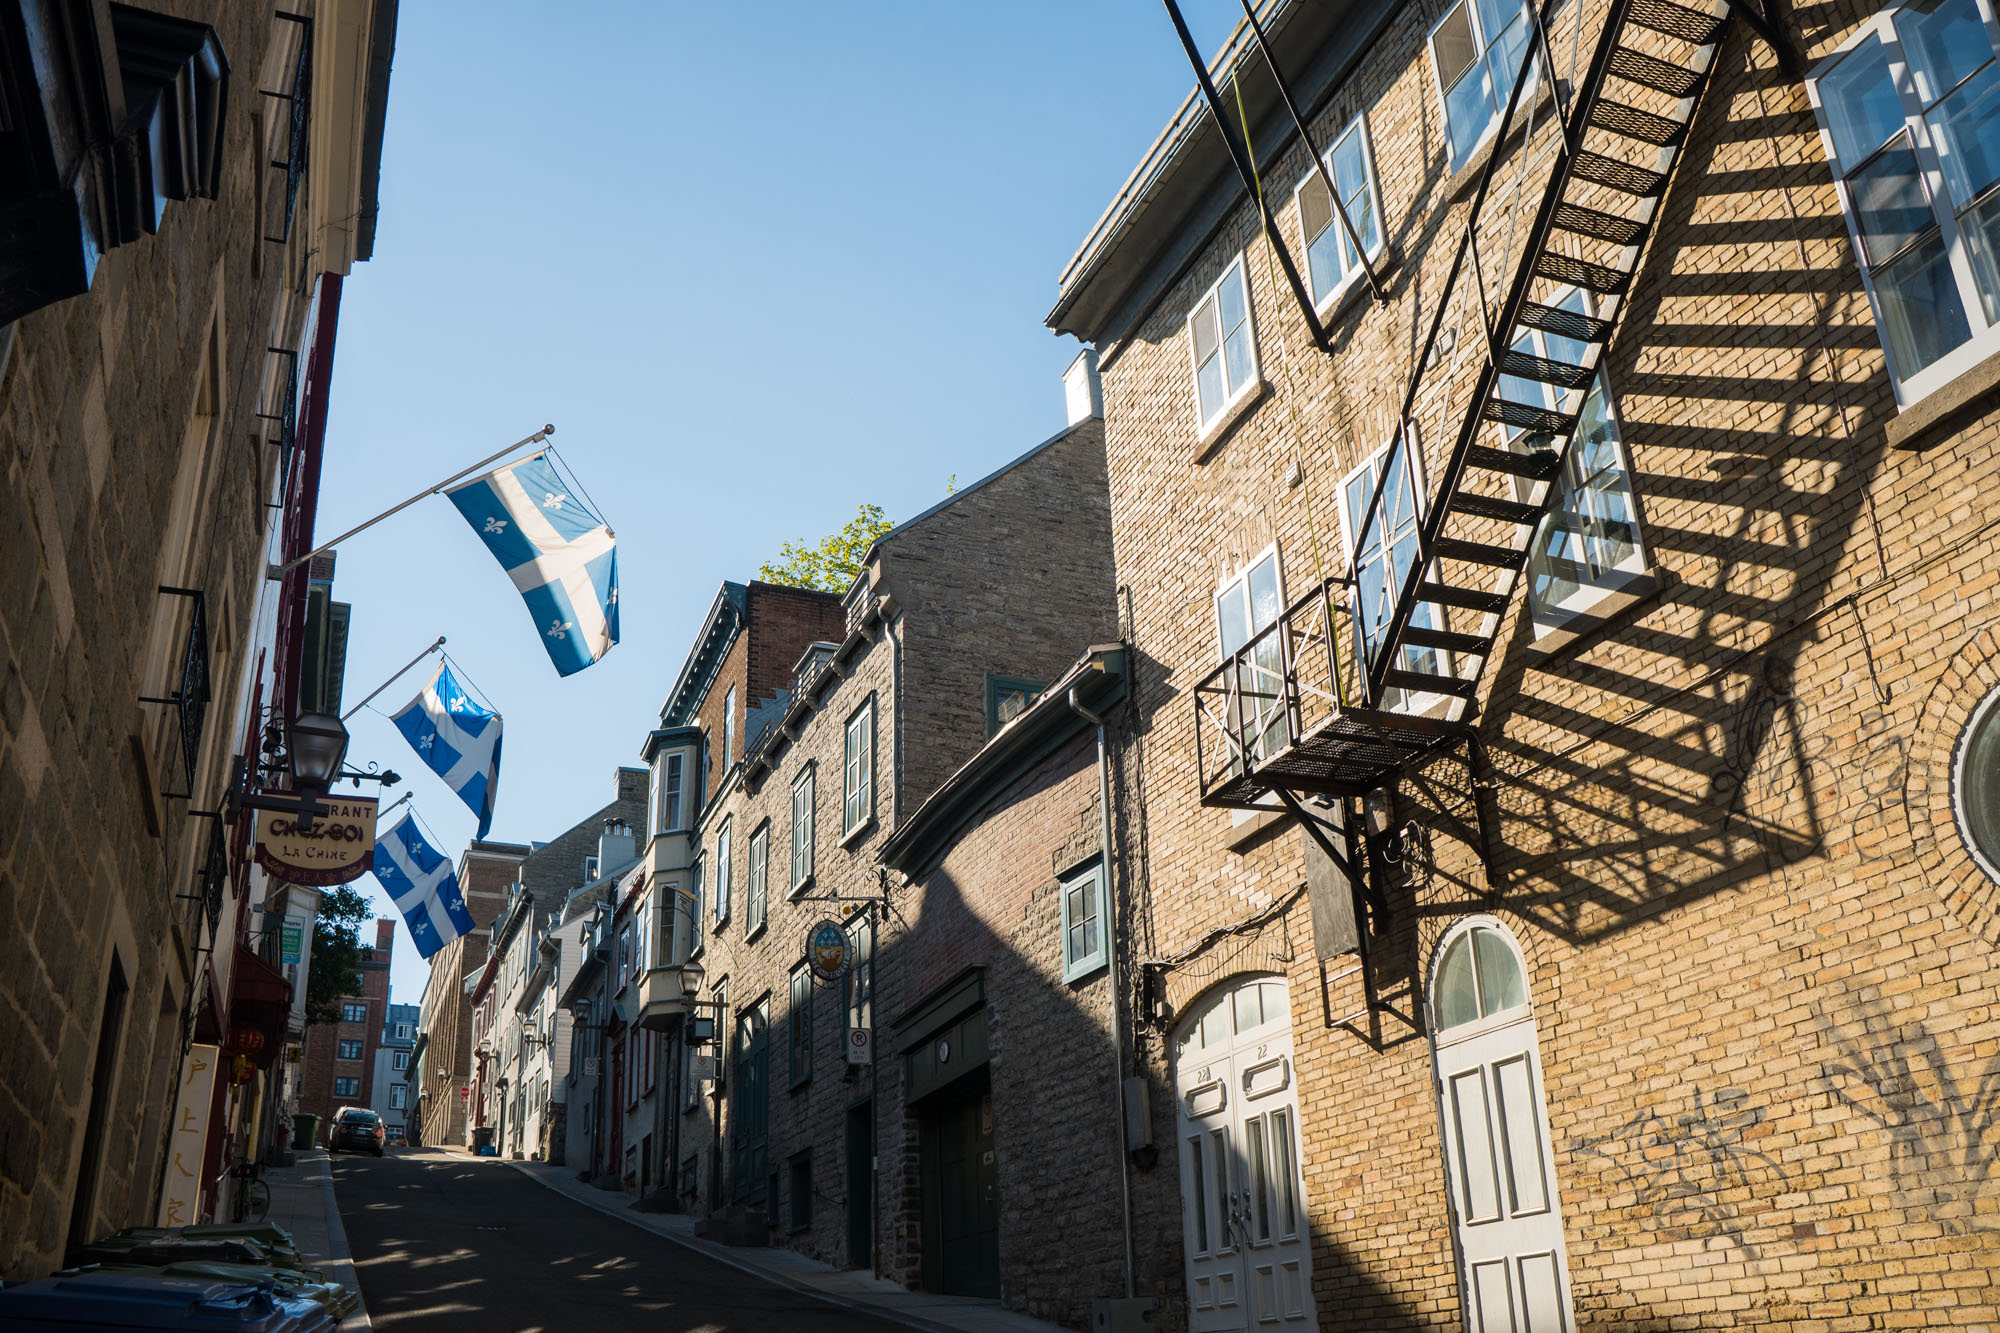 Streets of Old Quebec city